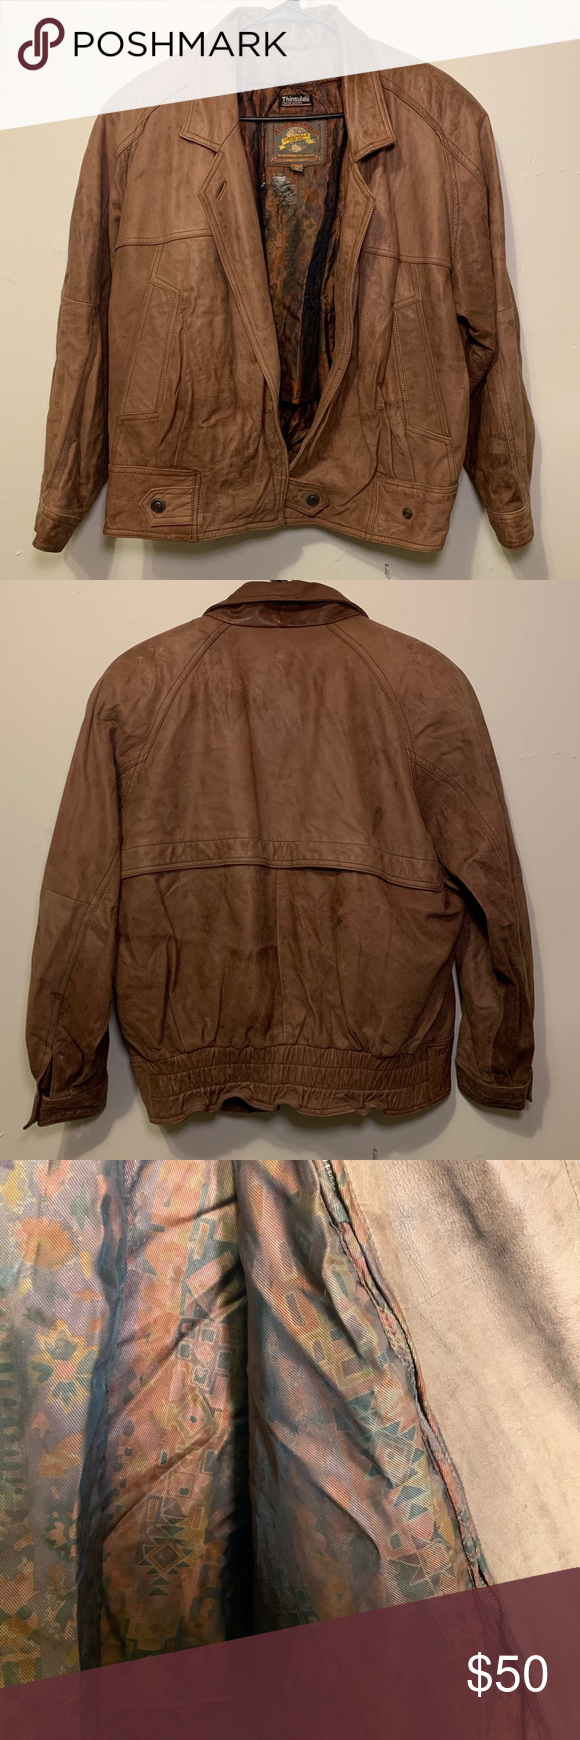 Vtg Adventure Bound Brown Leather Bomber Jacket M Leather Bomber Jacket Brown Leather Bomber Jacket Leather Bomber [ 1740 x 580 Pixel ]